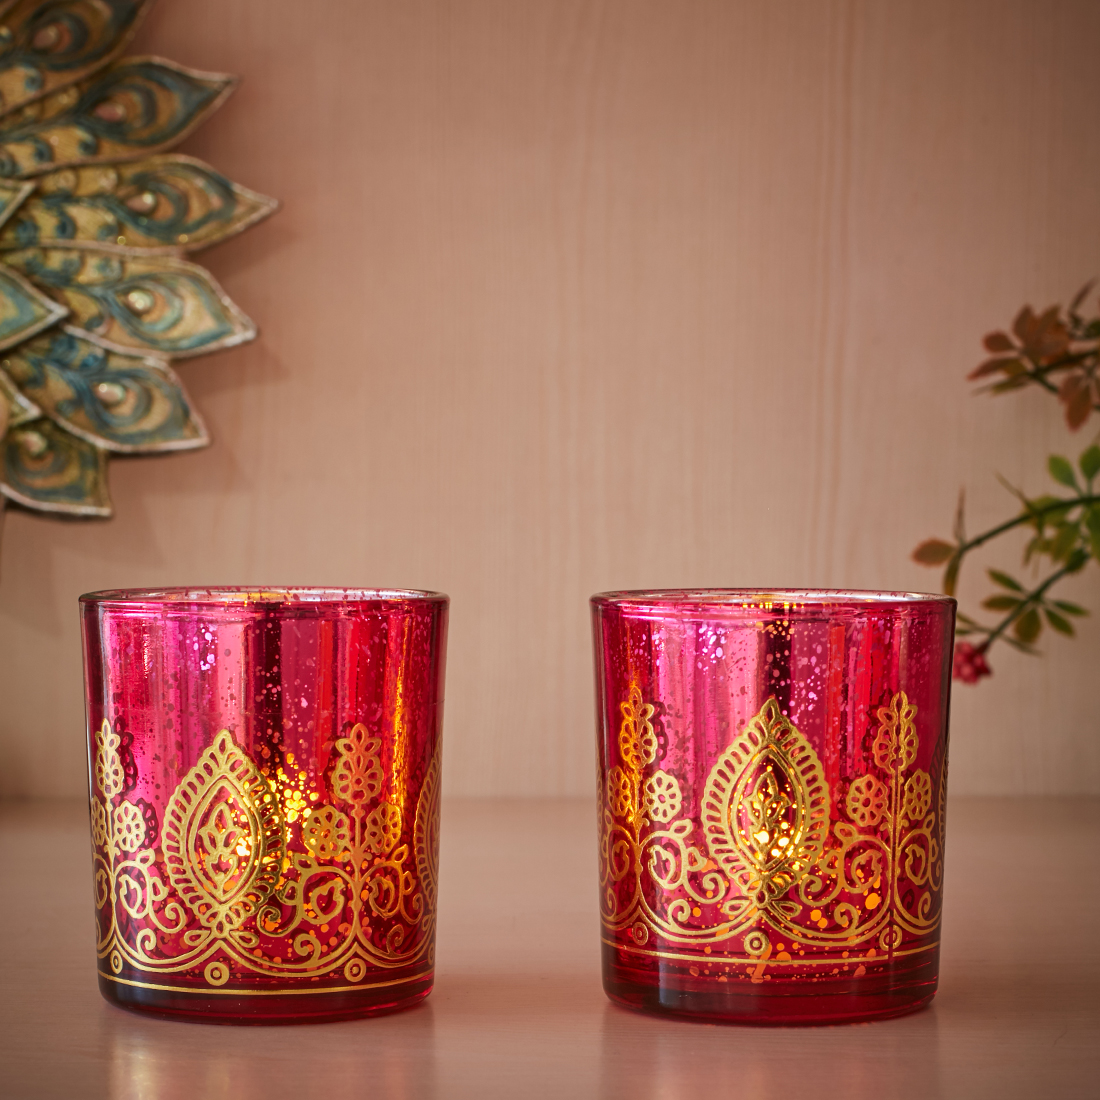 Zahara Set Of 2 Flower Etched Glass Candle Holders in PINK GLD Colour by Living Essence